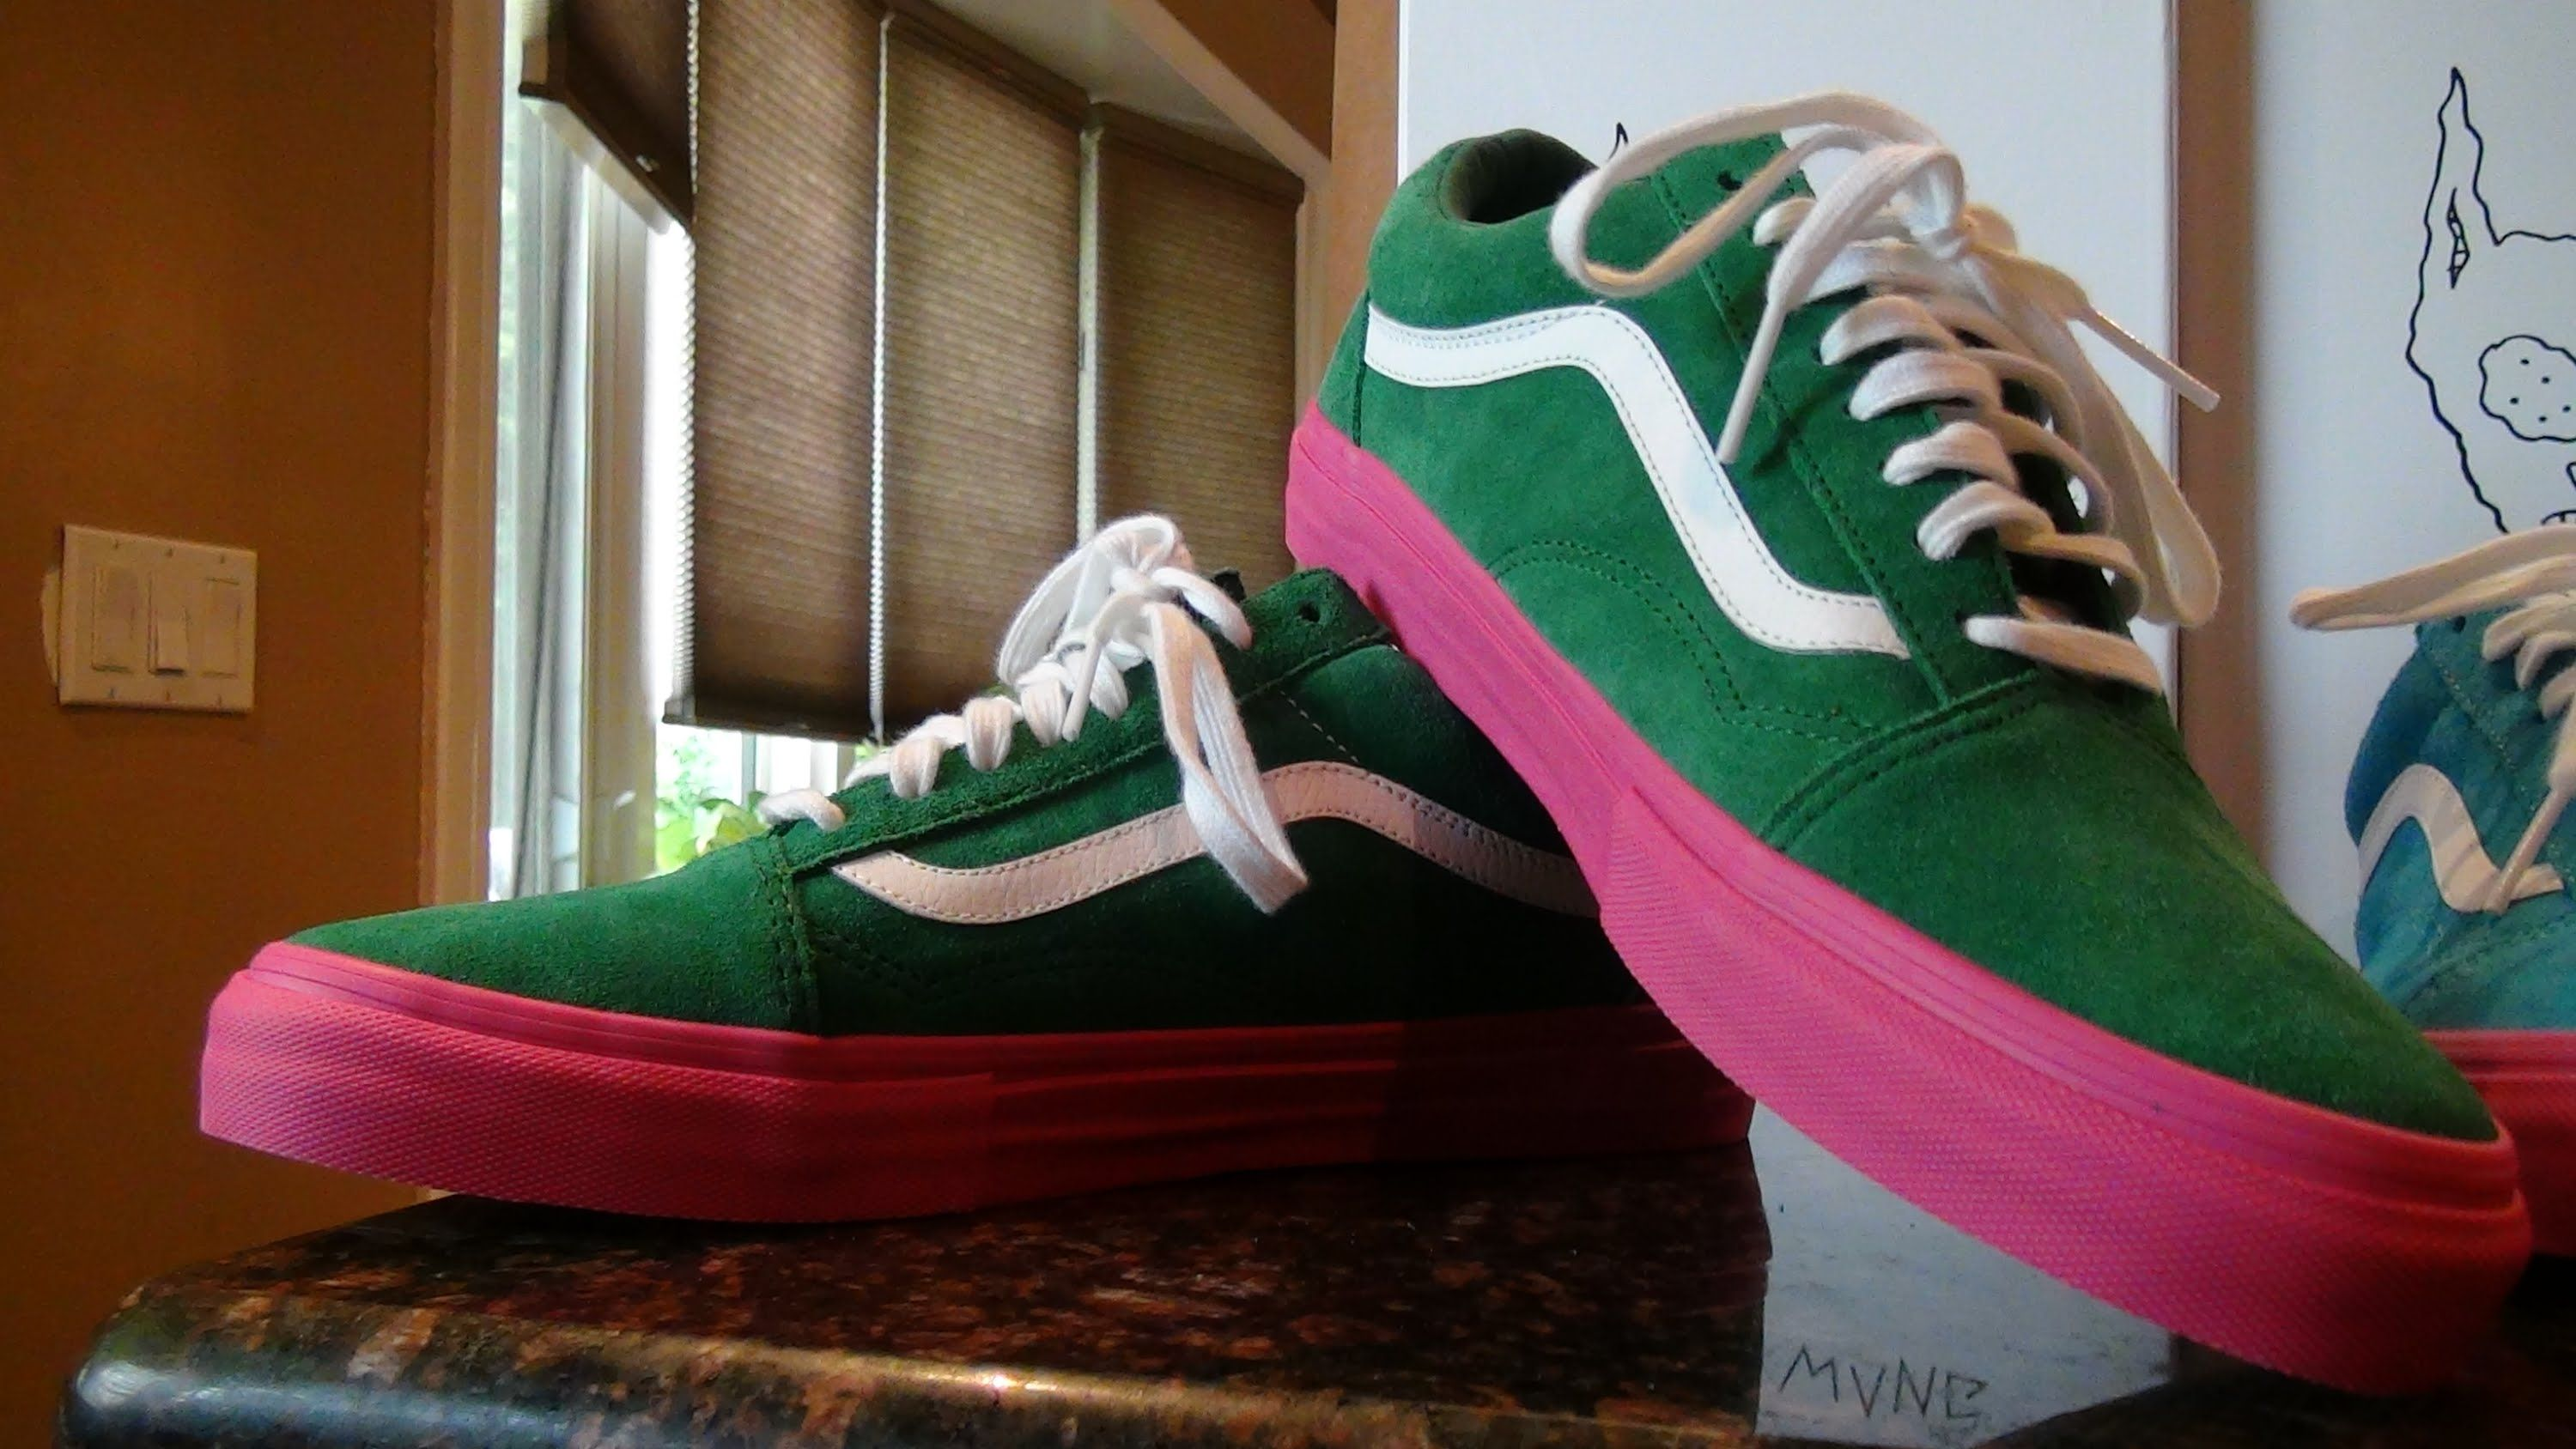 b05f35907867 Odd Future Golf Wang X Vans Syndicate Old Skool Pro Green - YouTube ...